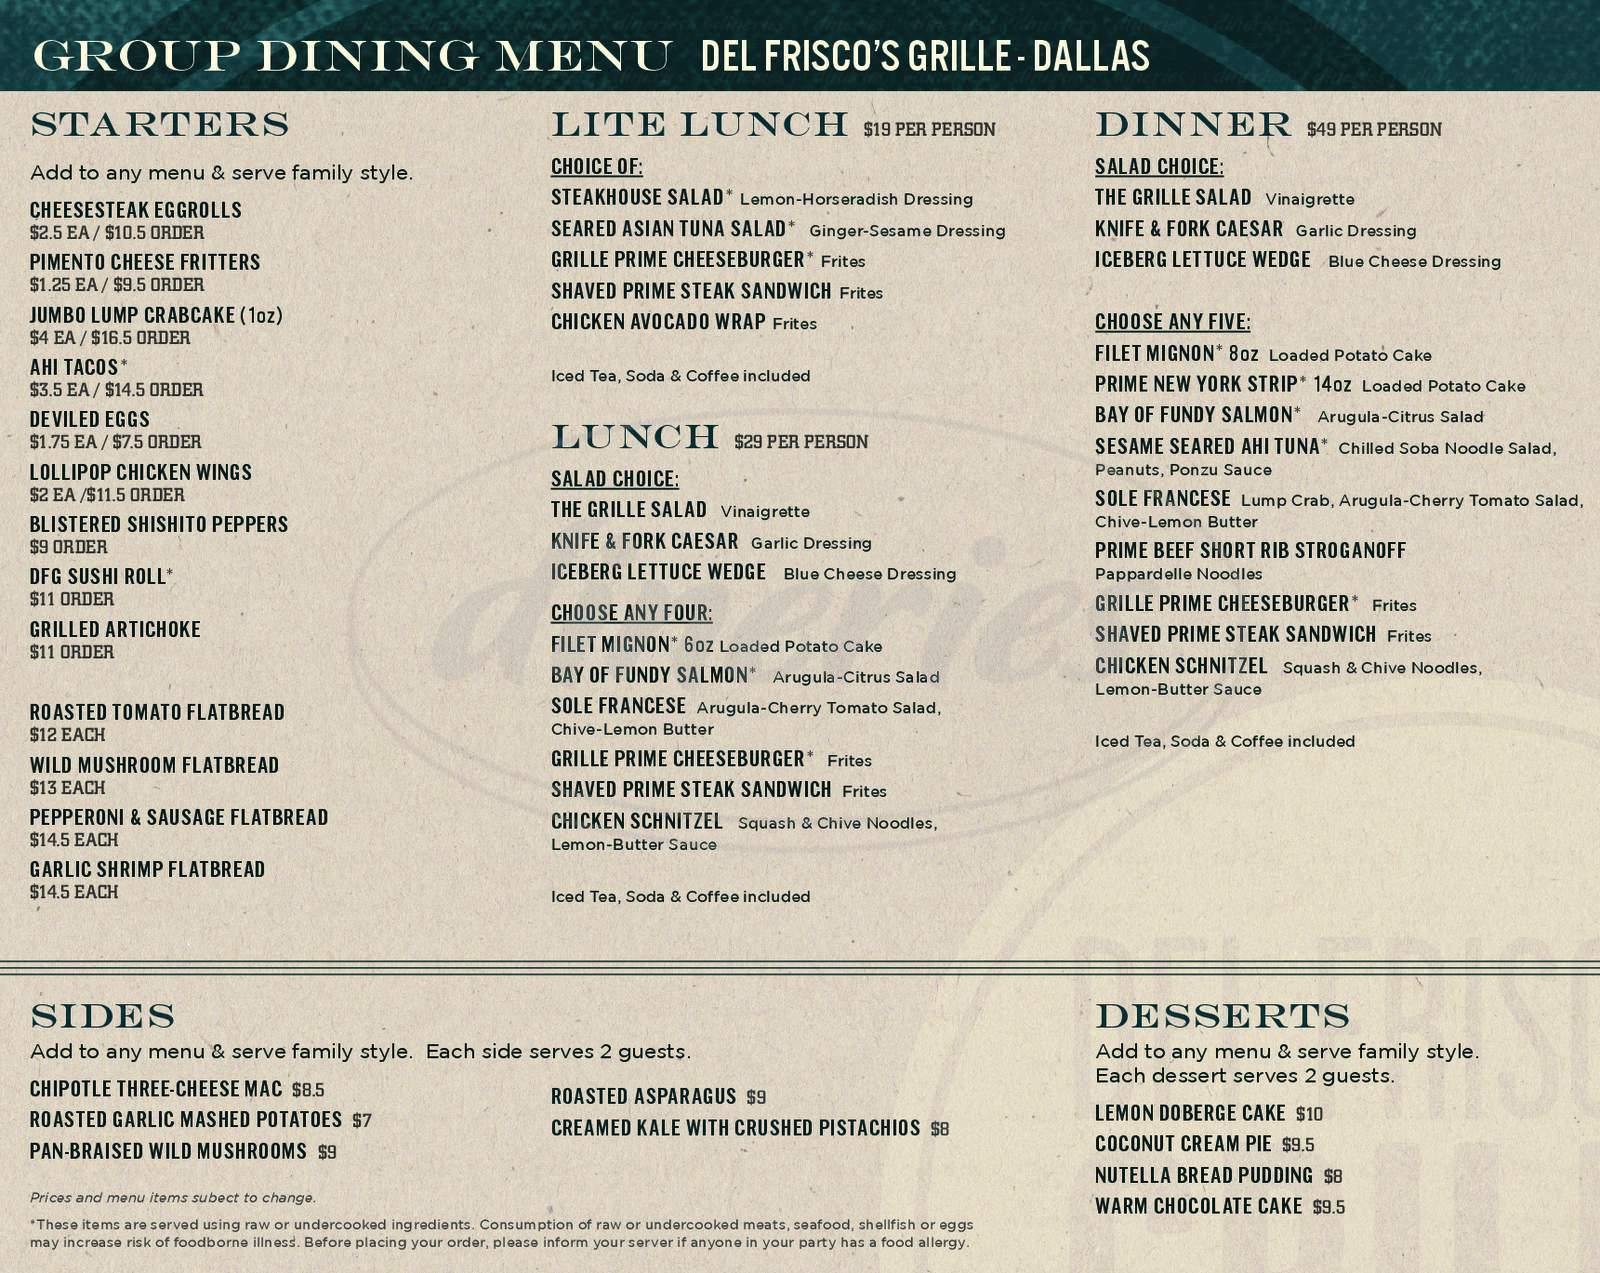 menu for Del Frisco's Grille